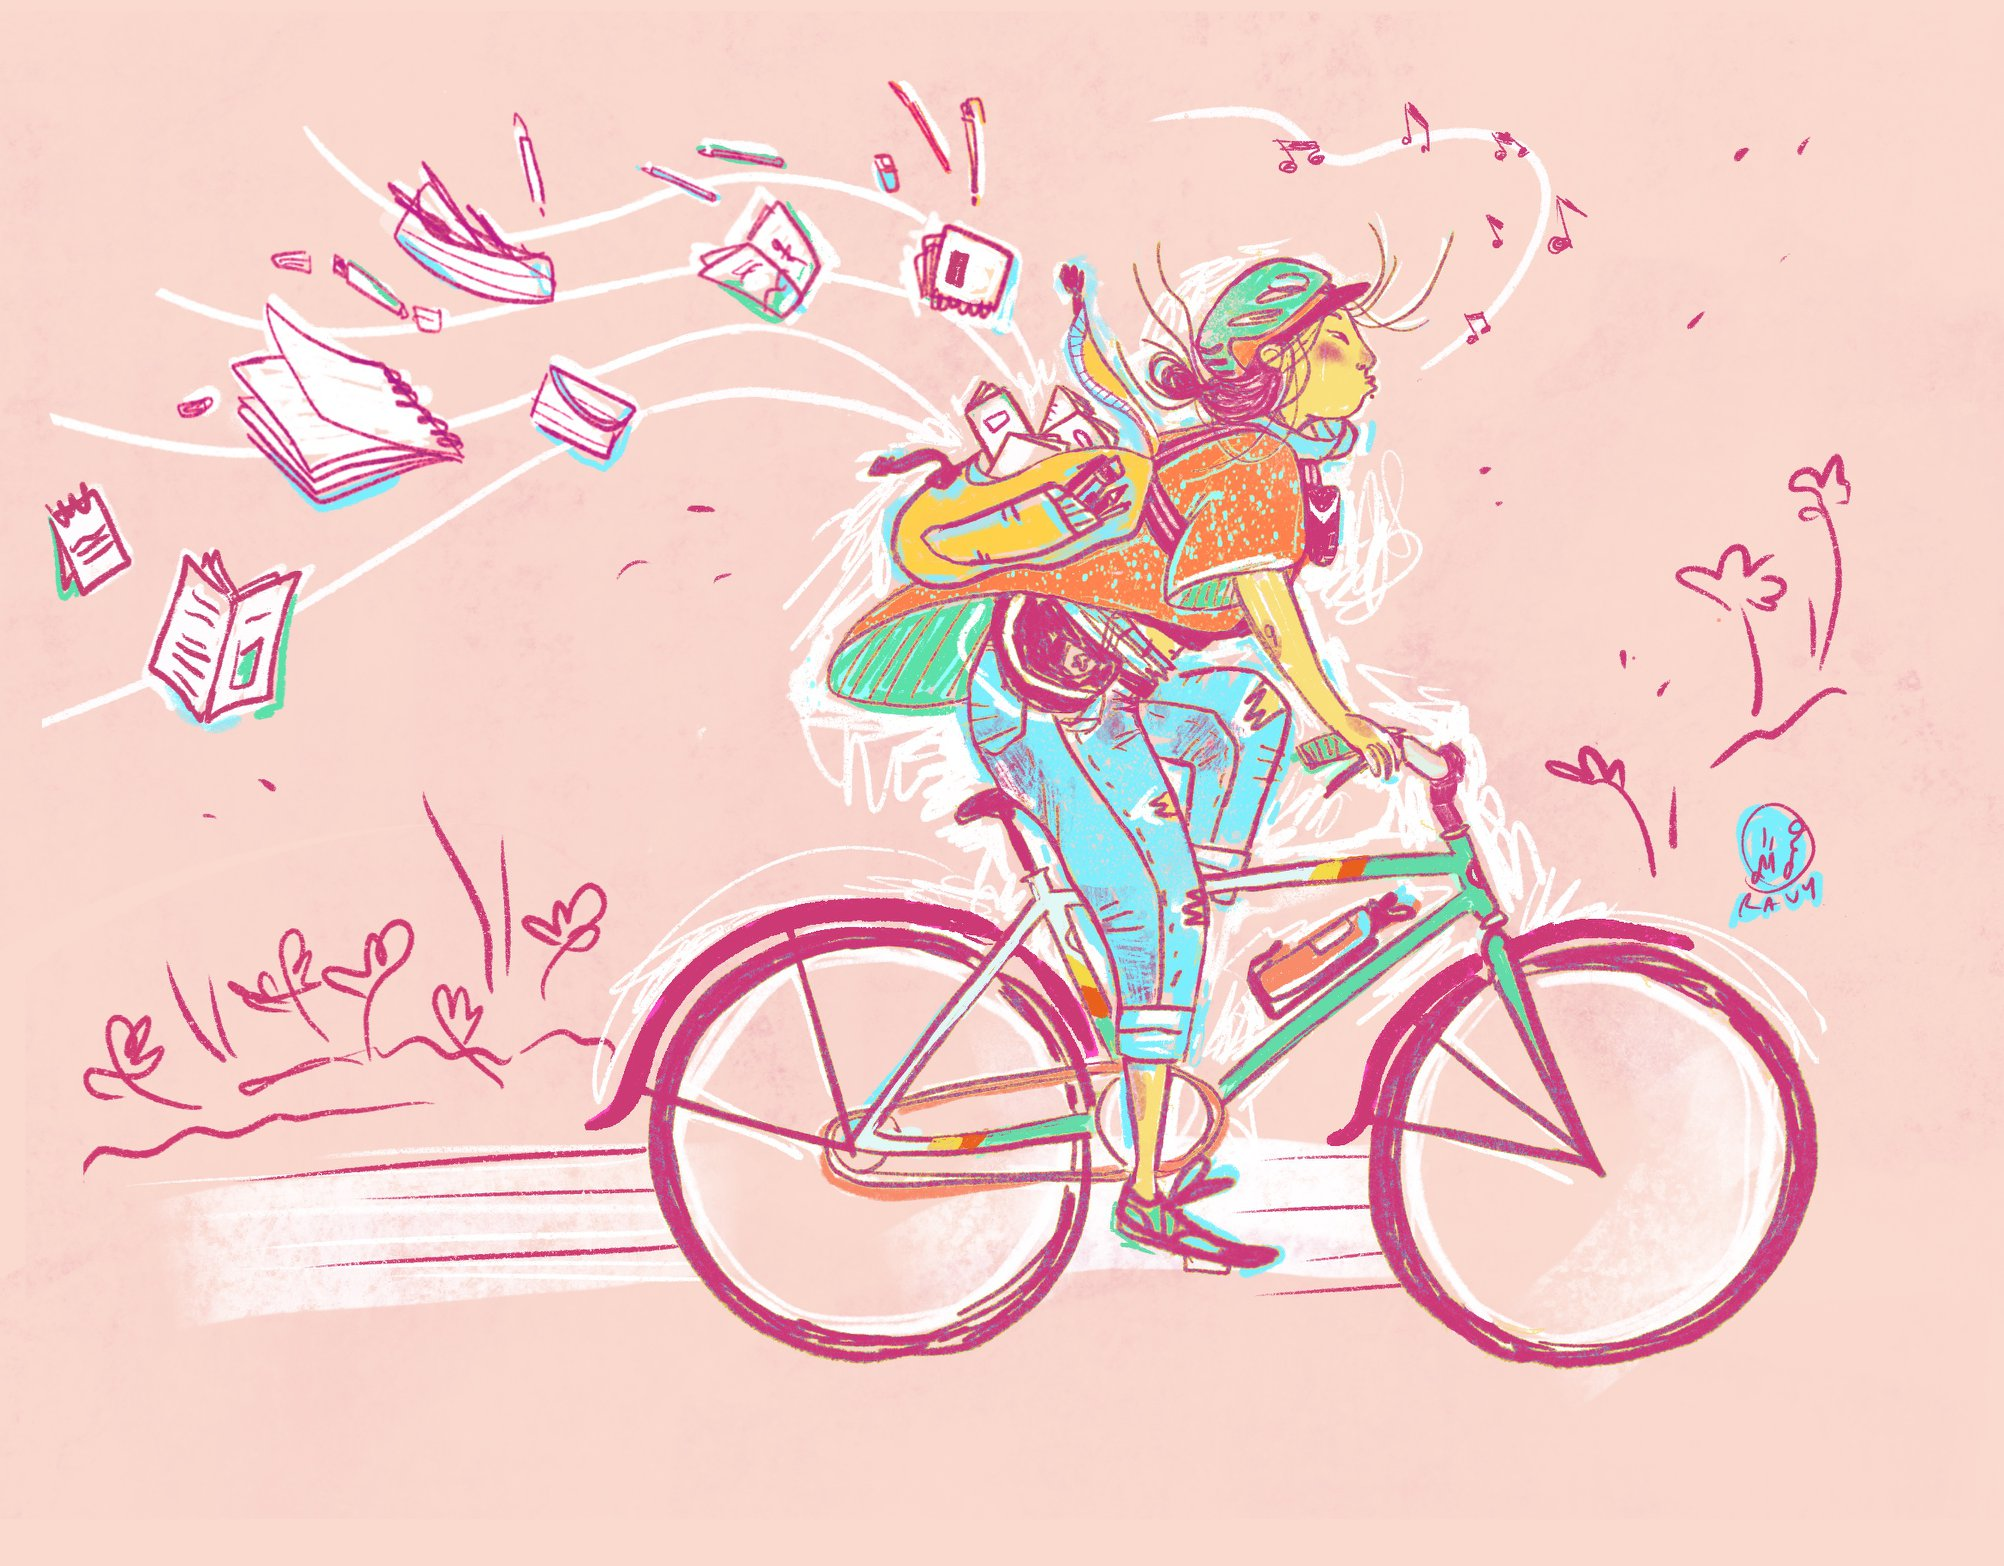 selfportrait_bike.jpg